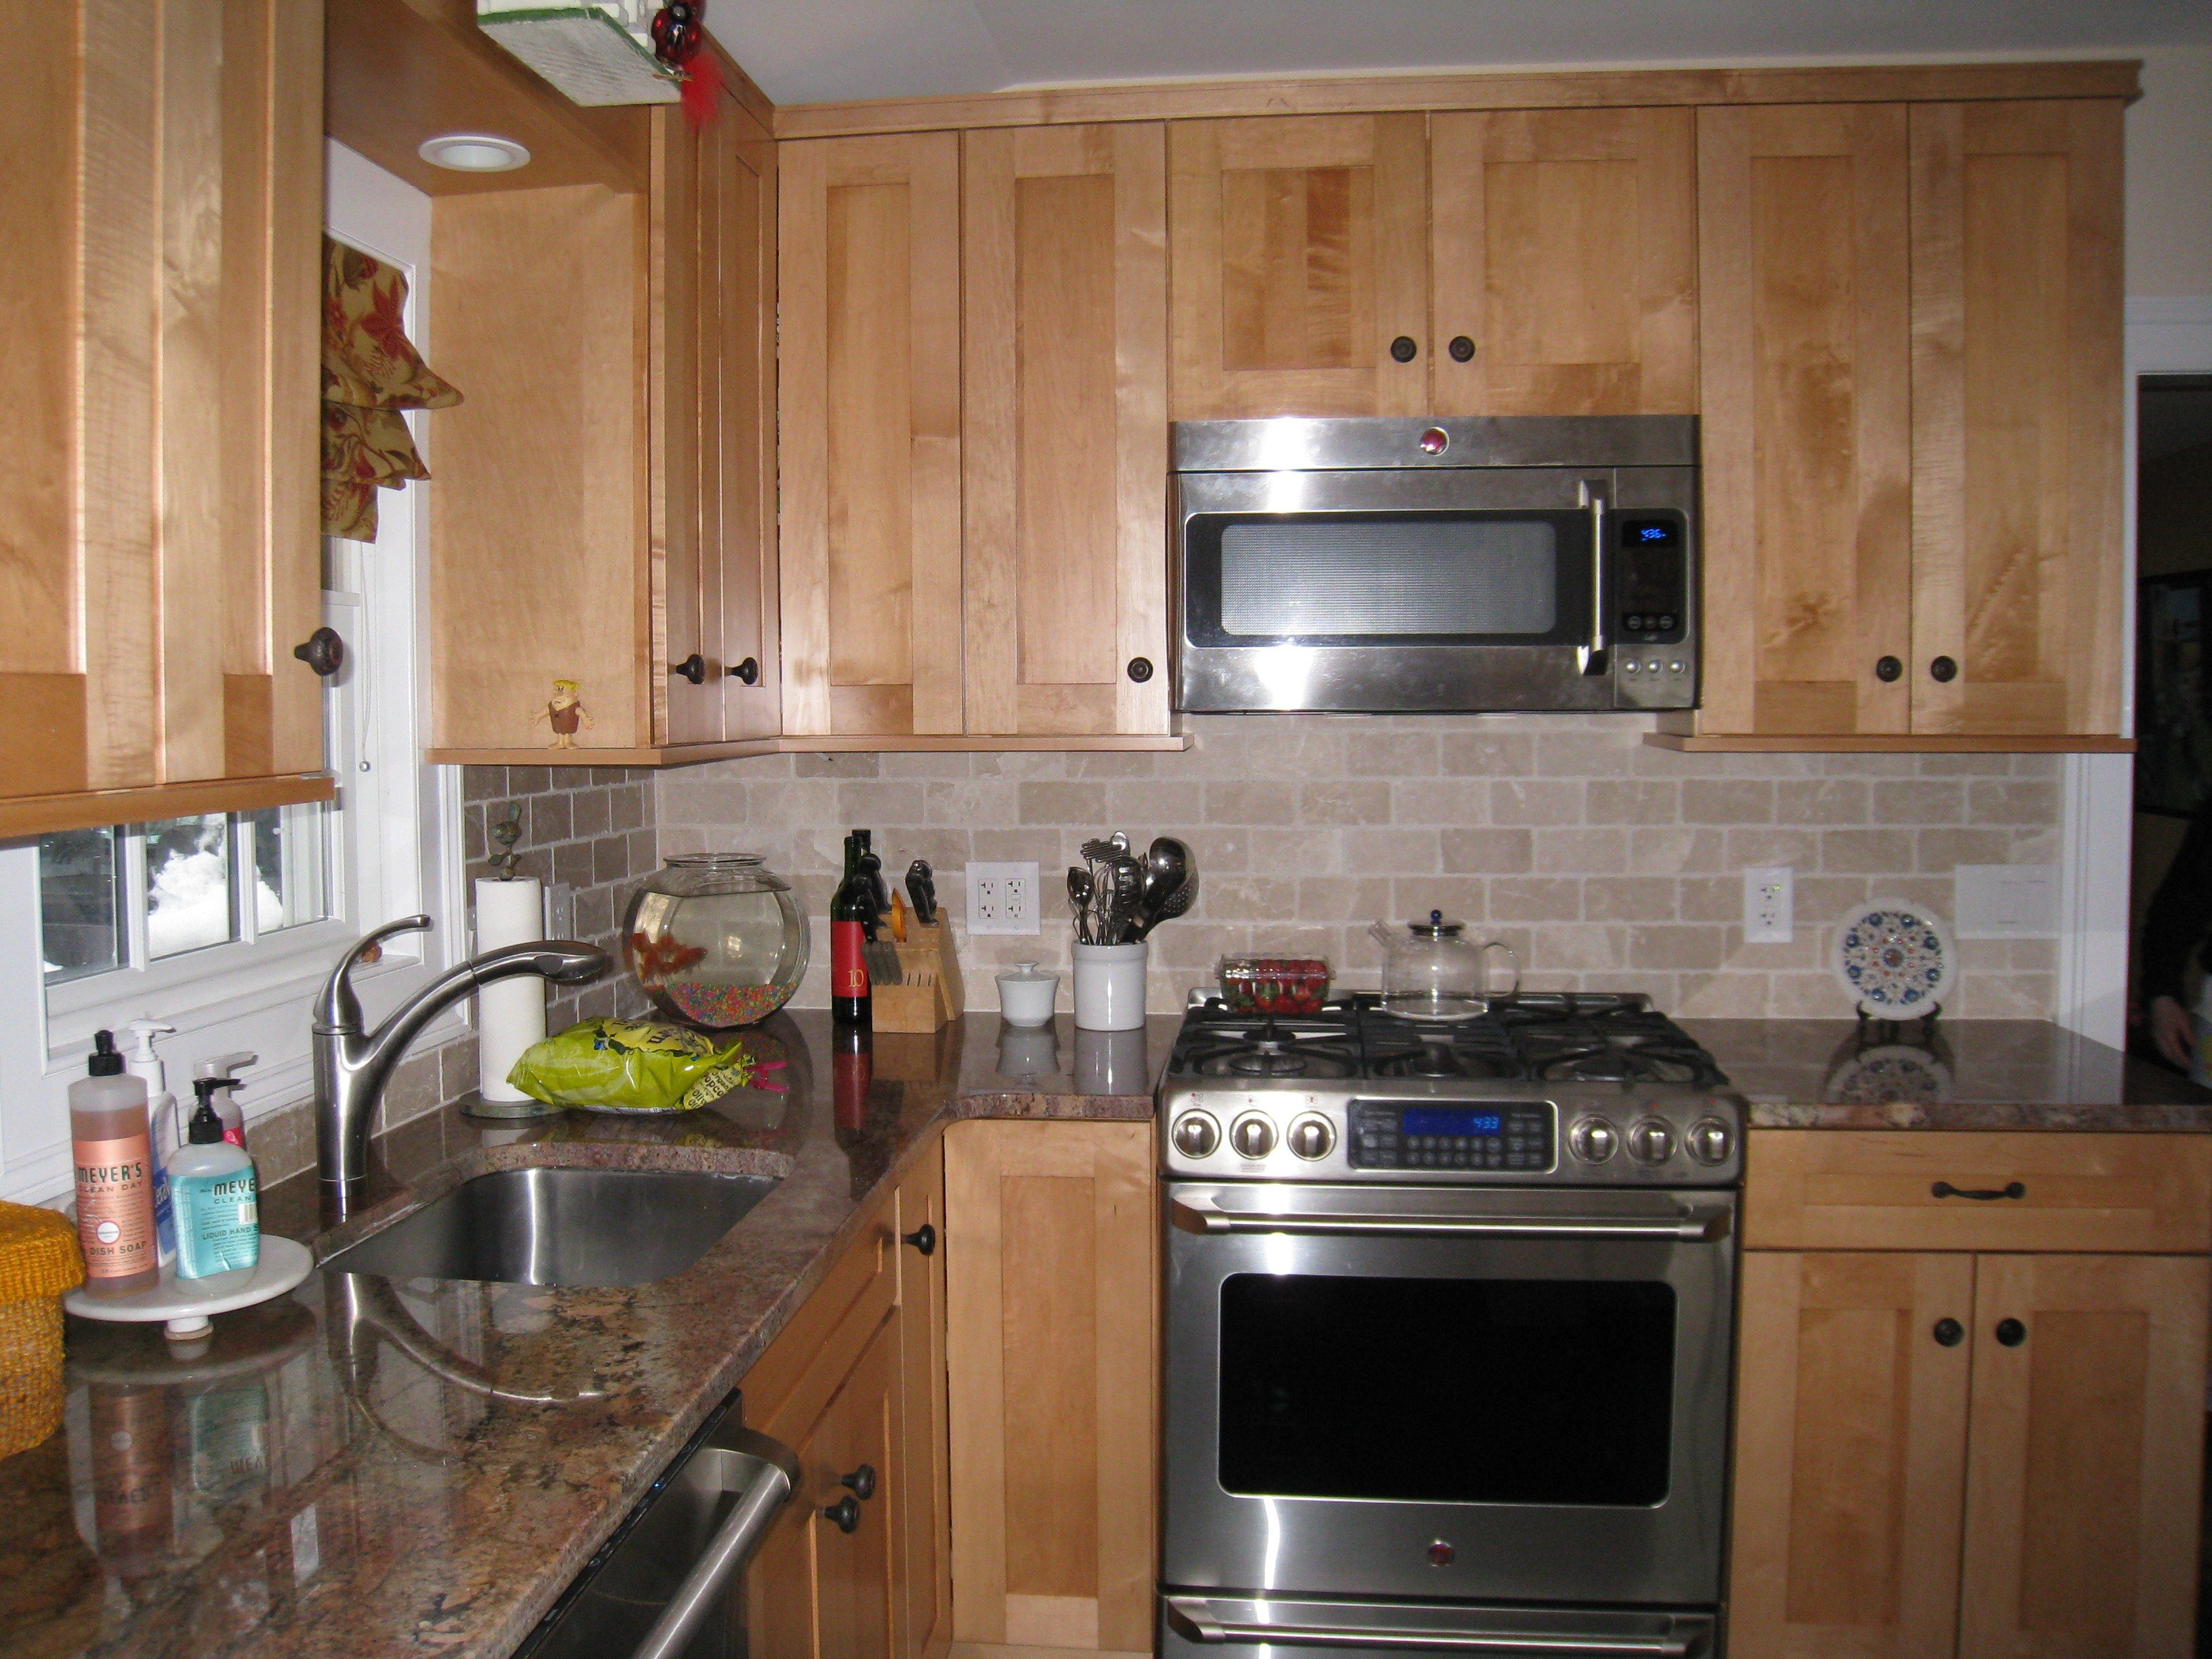 Craftsman Style Maple Cabinets With Craftsman Style Tile Backsplash Google Search Kitchen